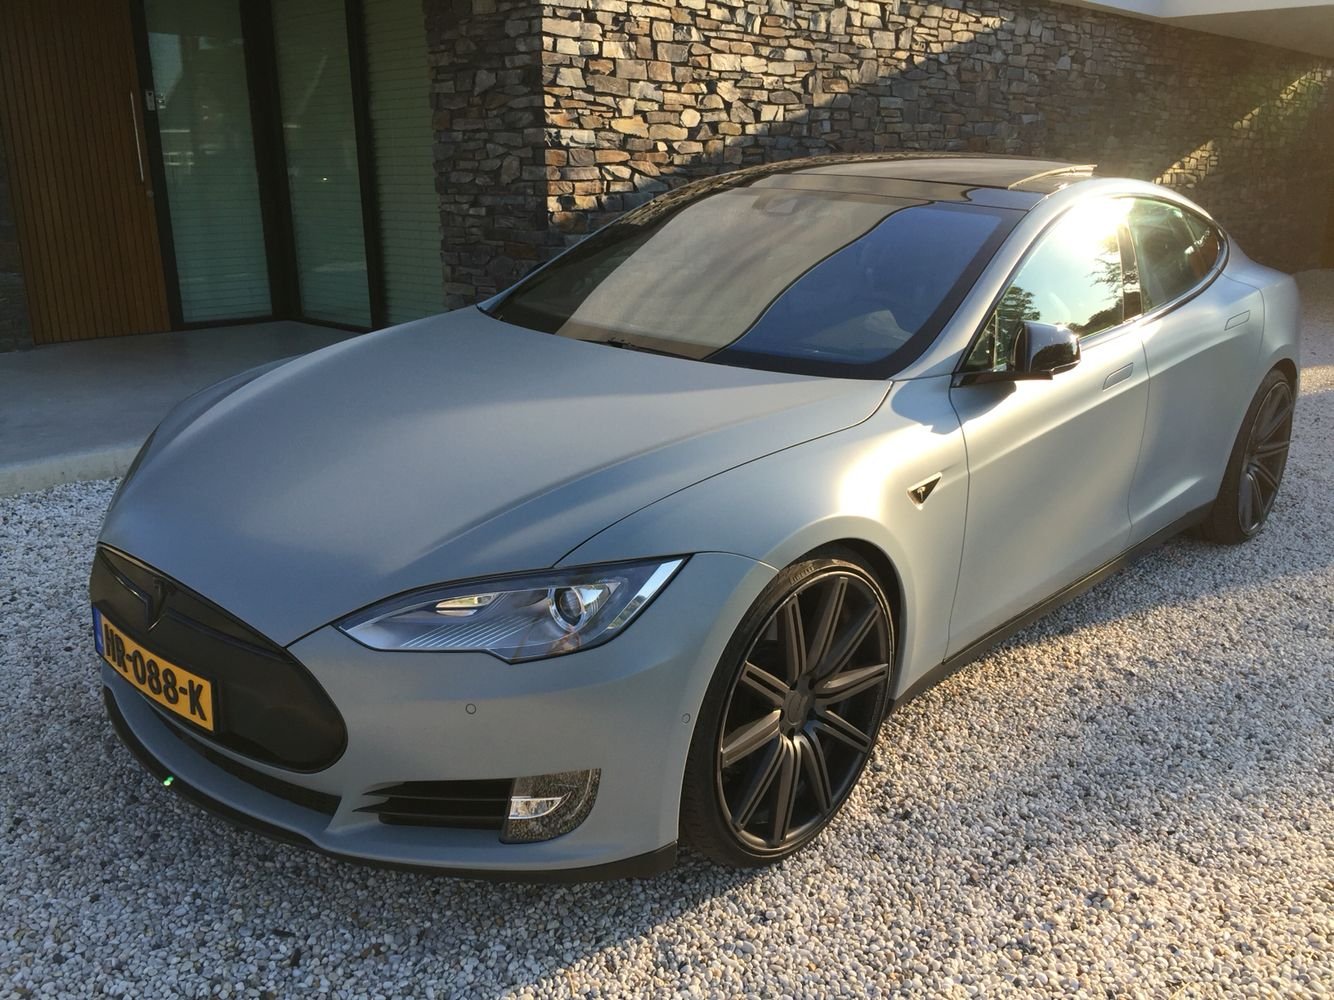 Tesla S Vinyl Wrap Battleship Grey 3m 22 Vossen Wheels Black Out Chroom And Carbon Wrapped Grill Tesla Model S Tesla Model Tesla S